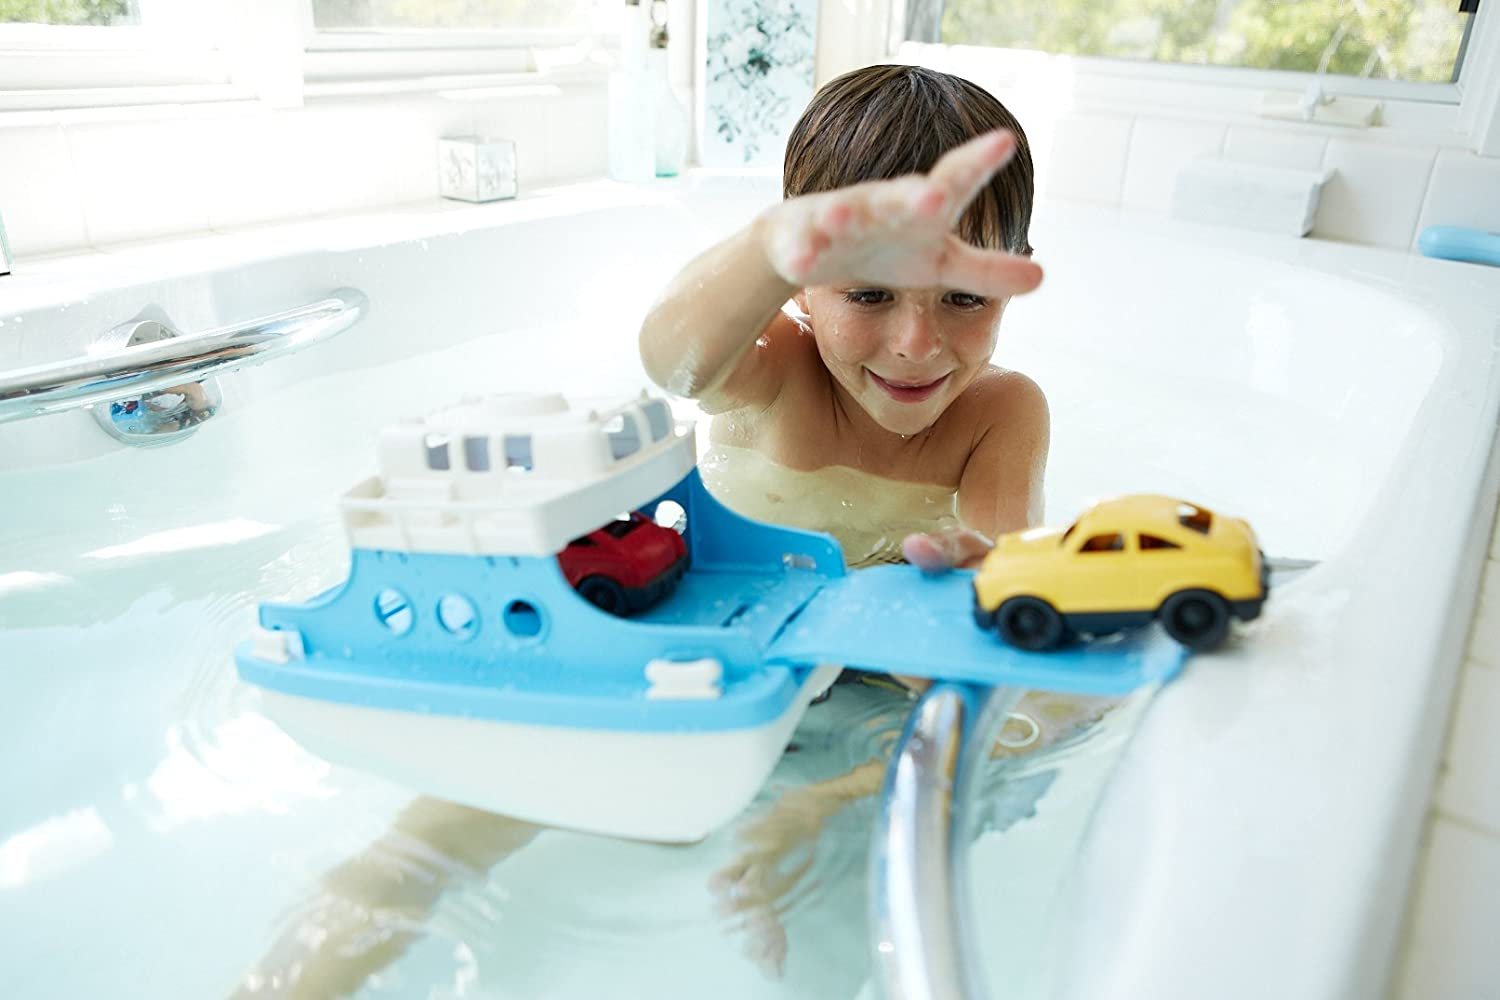 Amazon.com: Green Toys Ferry Boat with Mini Cars Bathtub Toy, Blue ...